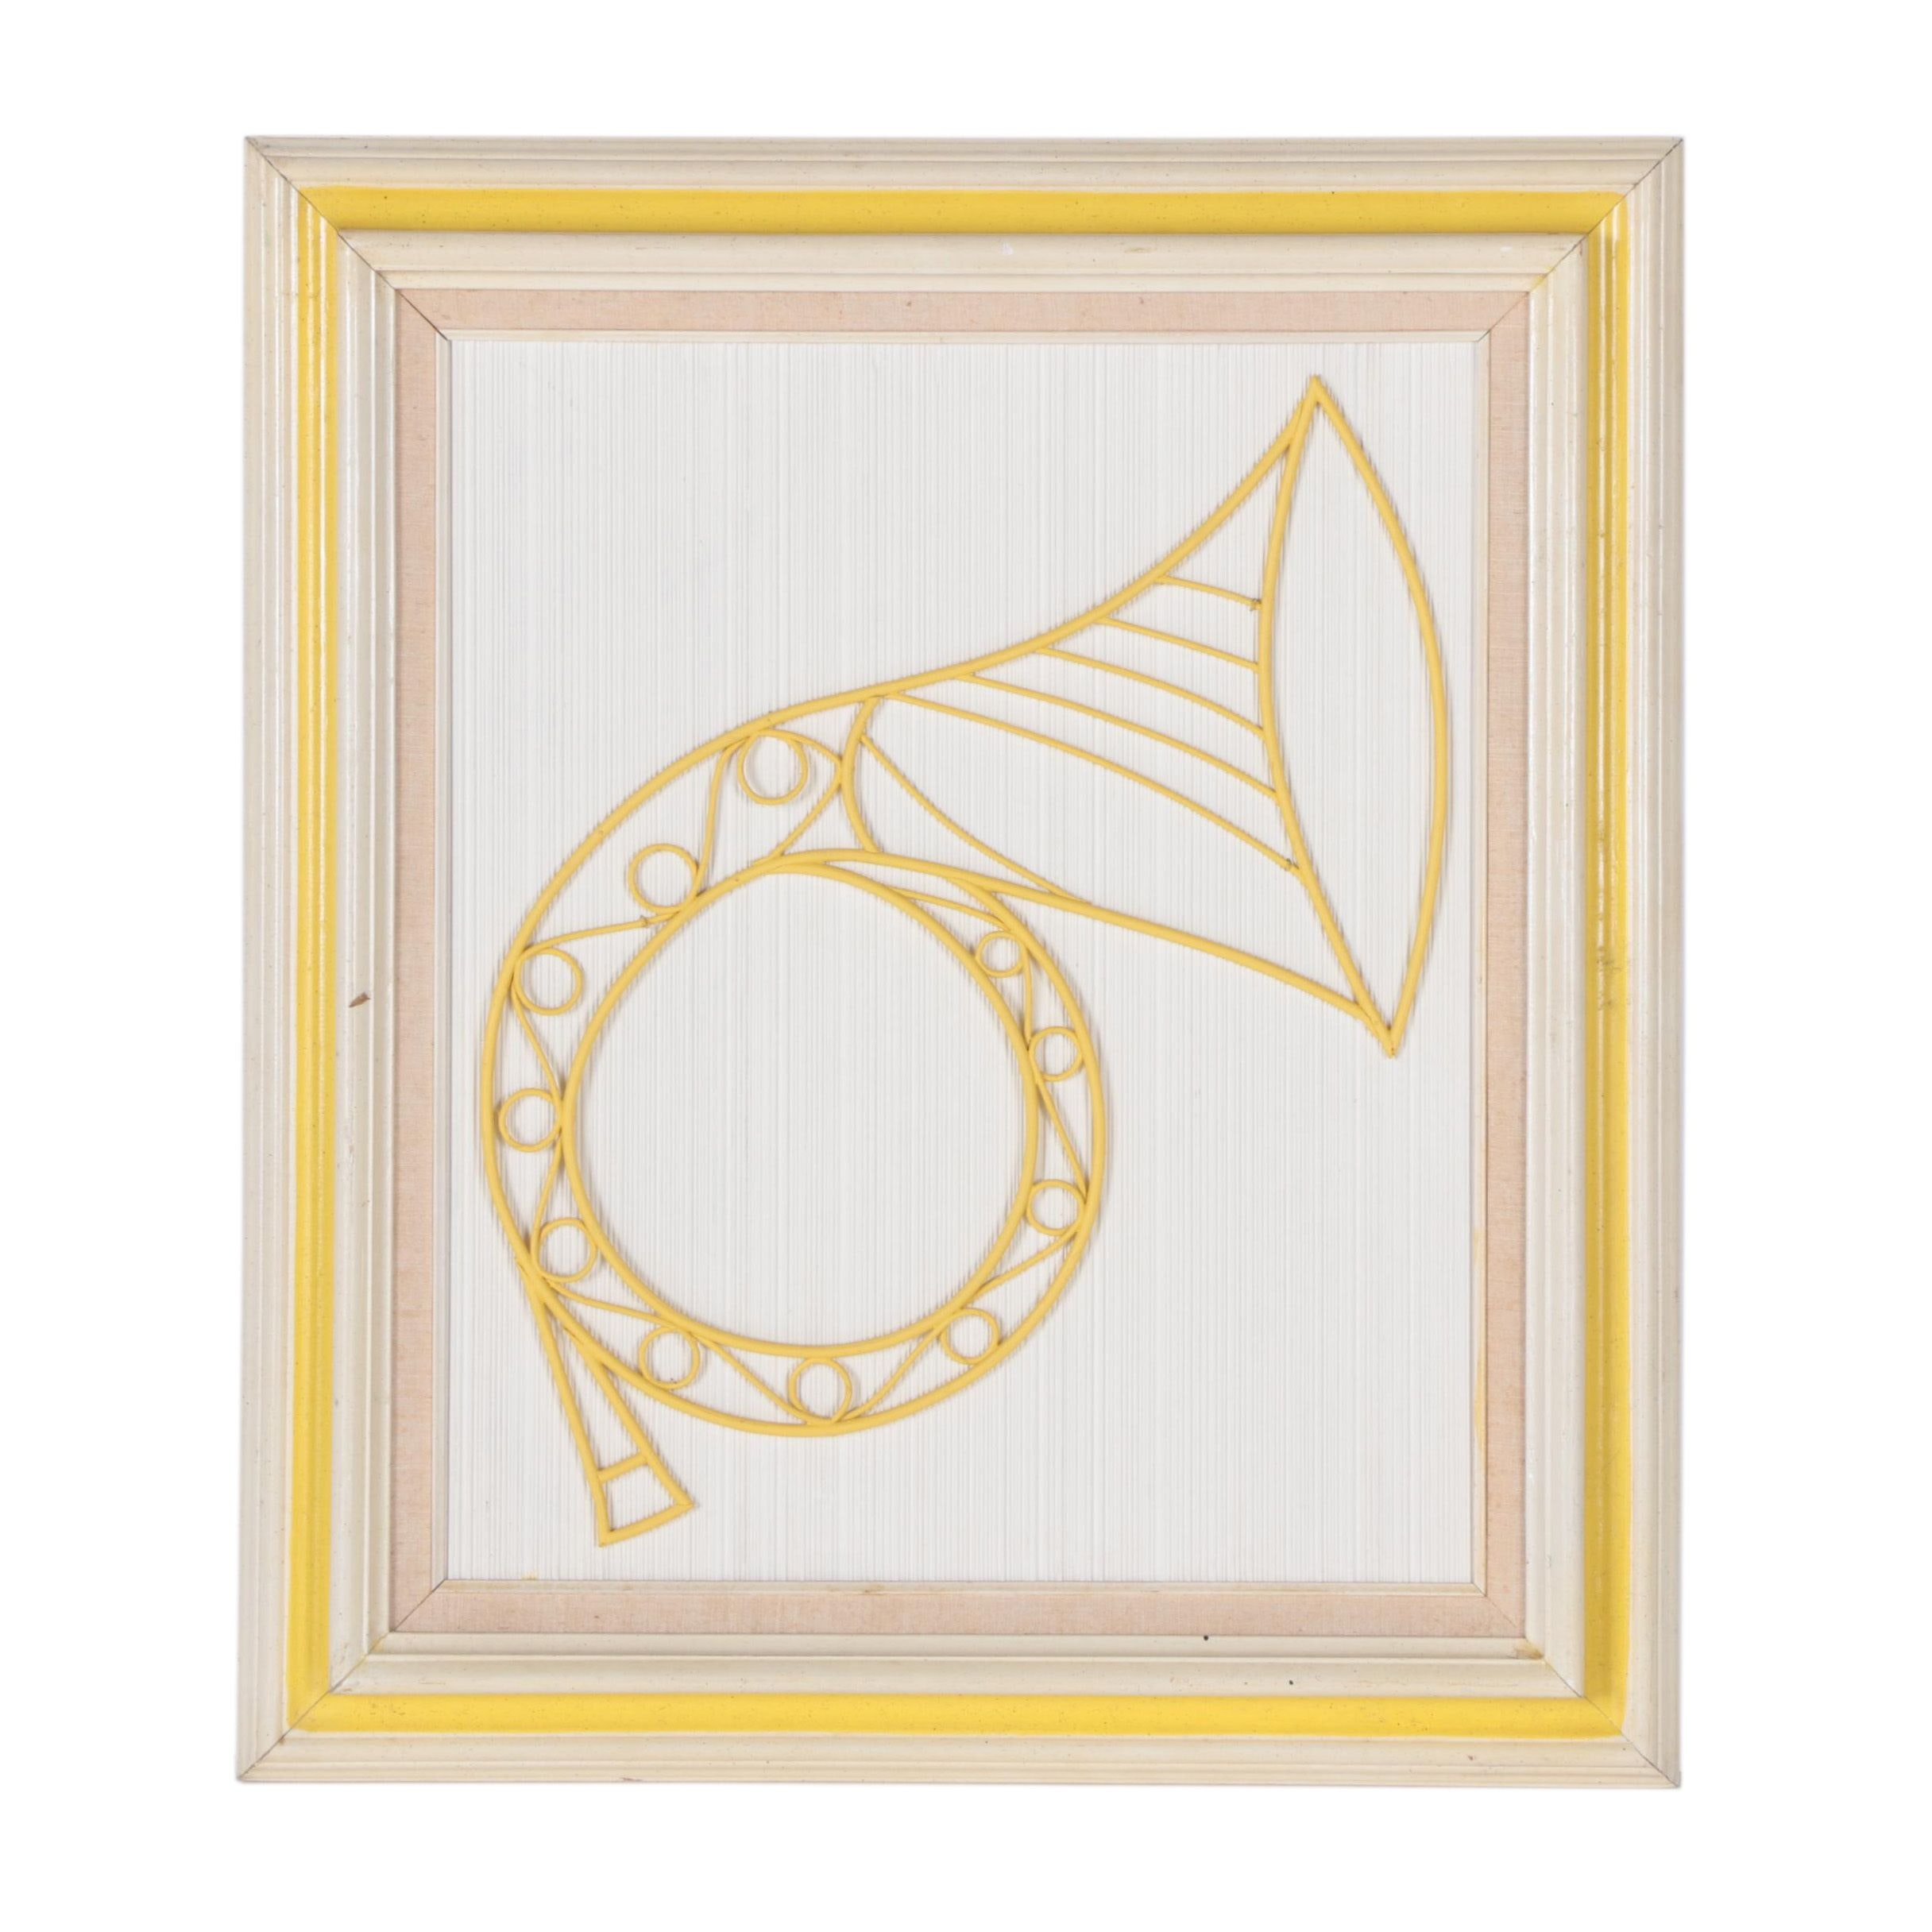 Framed Wooden French Horn Art